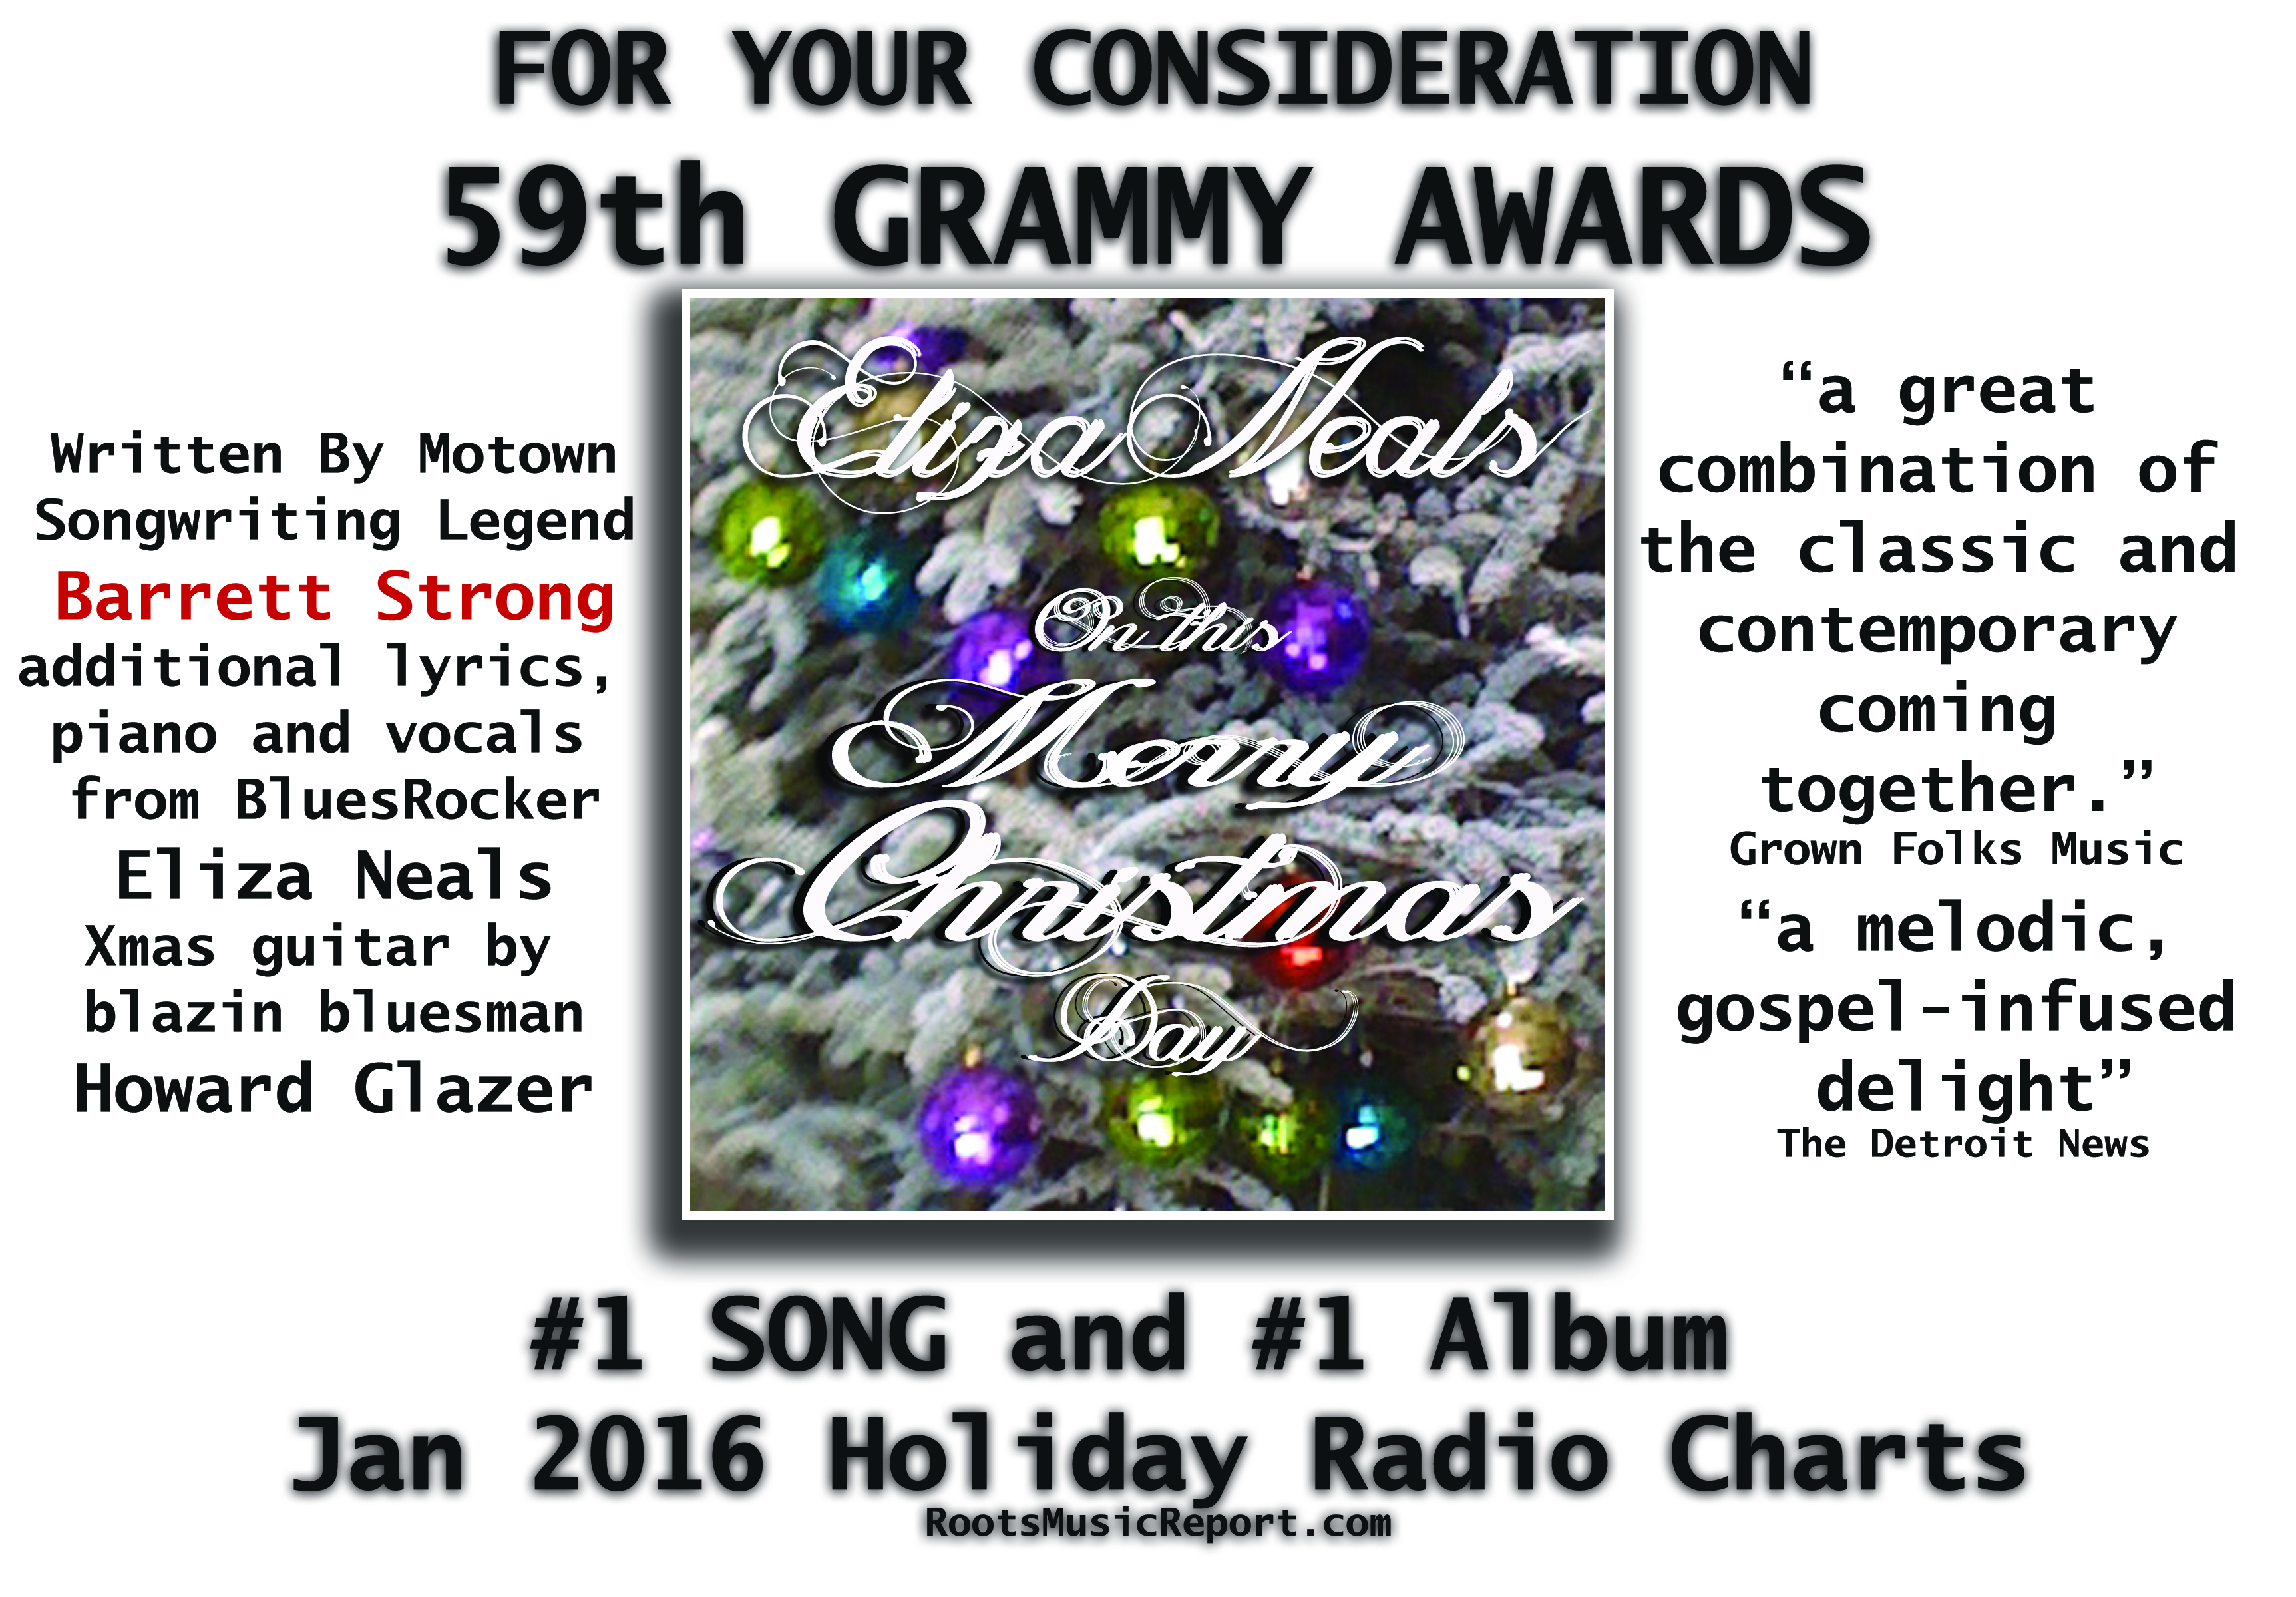 59th-Grammys-FYC-First-Round_On-This-Merry-Christmas-Day_Barrett-Strong_Eliza-Neals